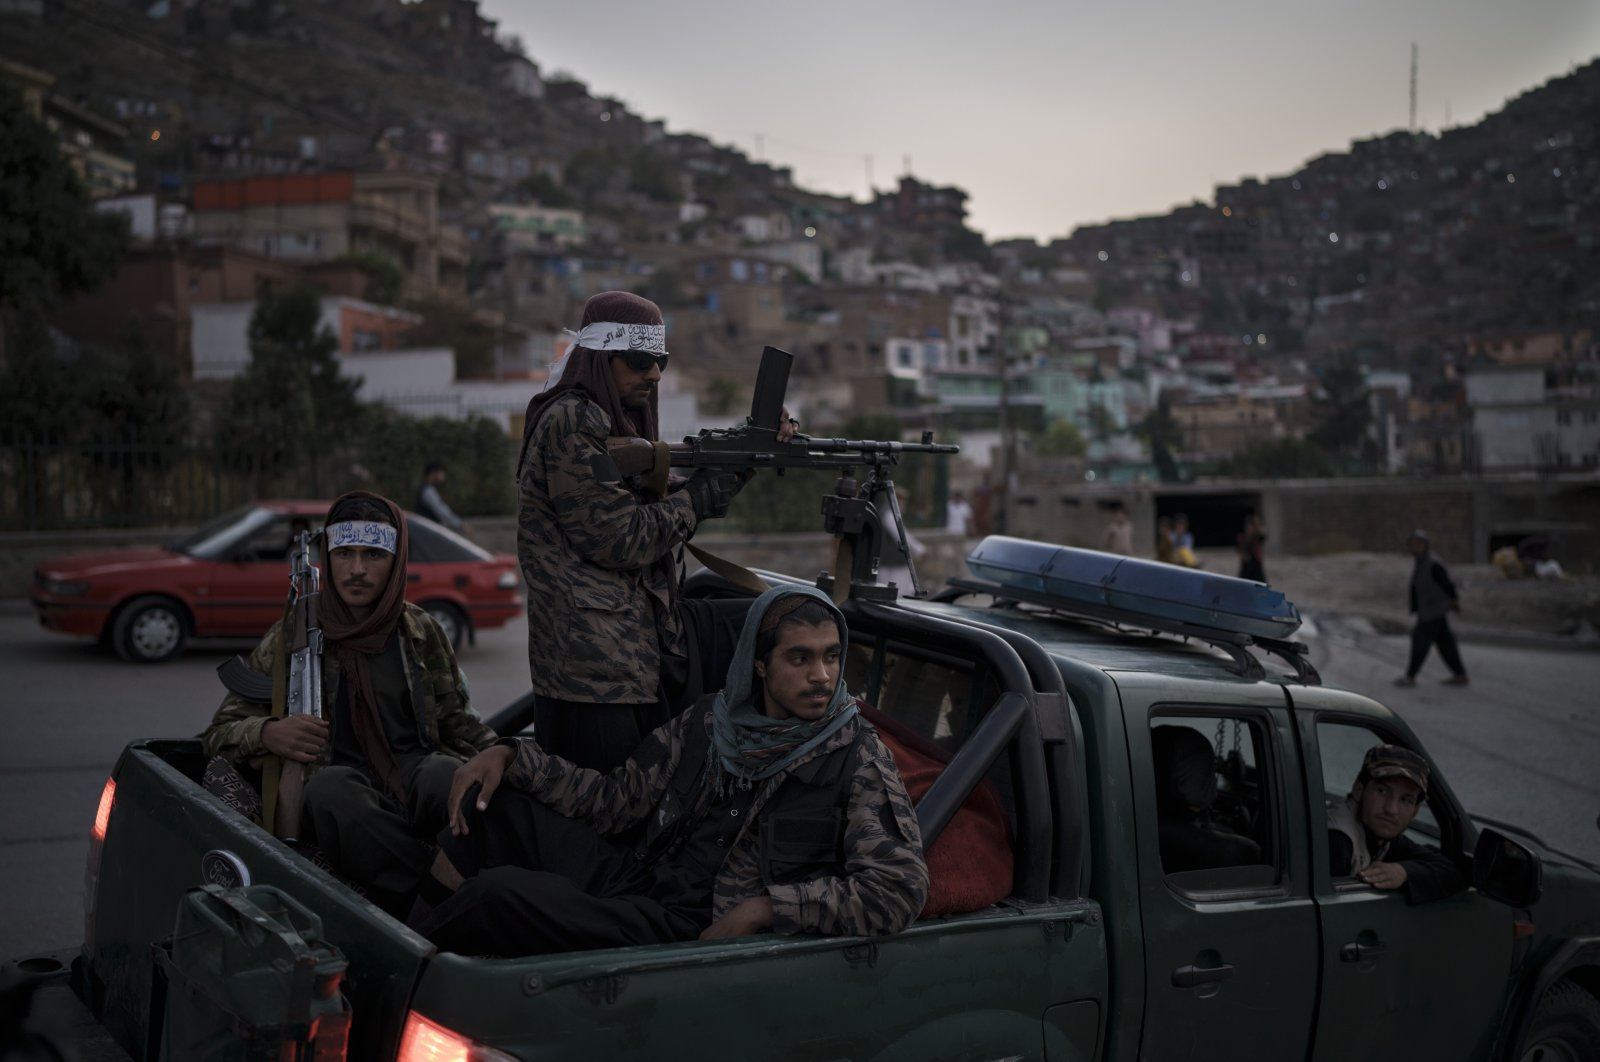 Taliban fighters sit on the back of a pickup truck as they stop on a hillside in Kabul, Afghanistan, Sept. 19, 2021. (AP Photo)